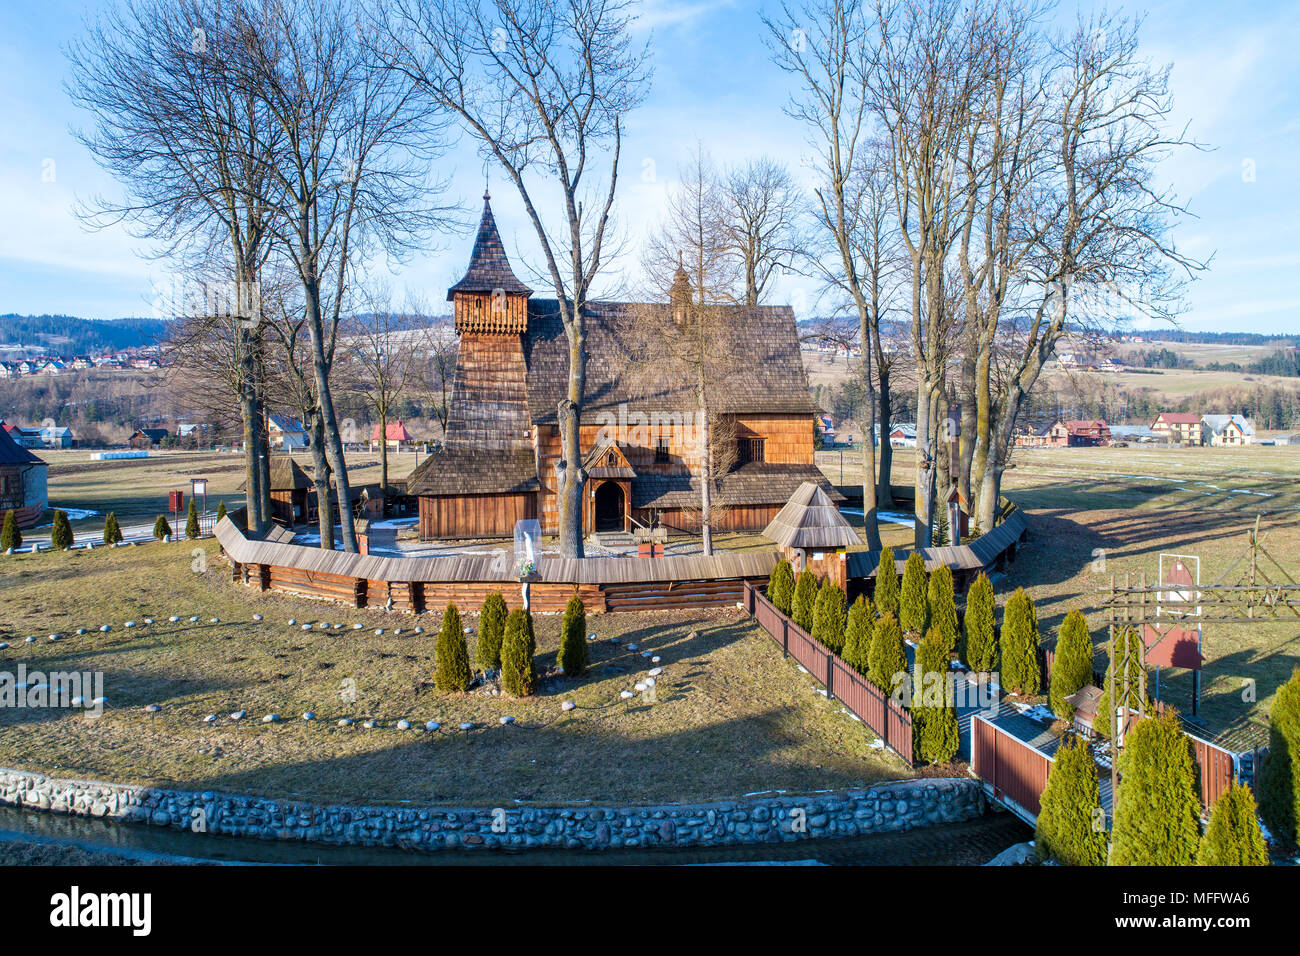 Debno, Poland. Medieval wooden Gothic church of the Saint Archangel Michael, built in 15th century, still active. Aerial view. - Stock Image